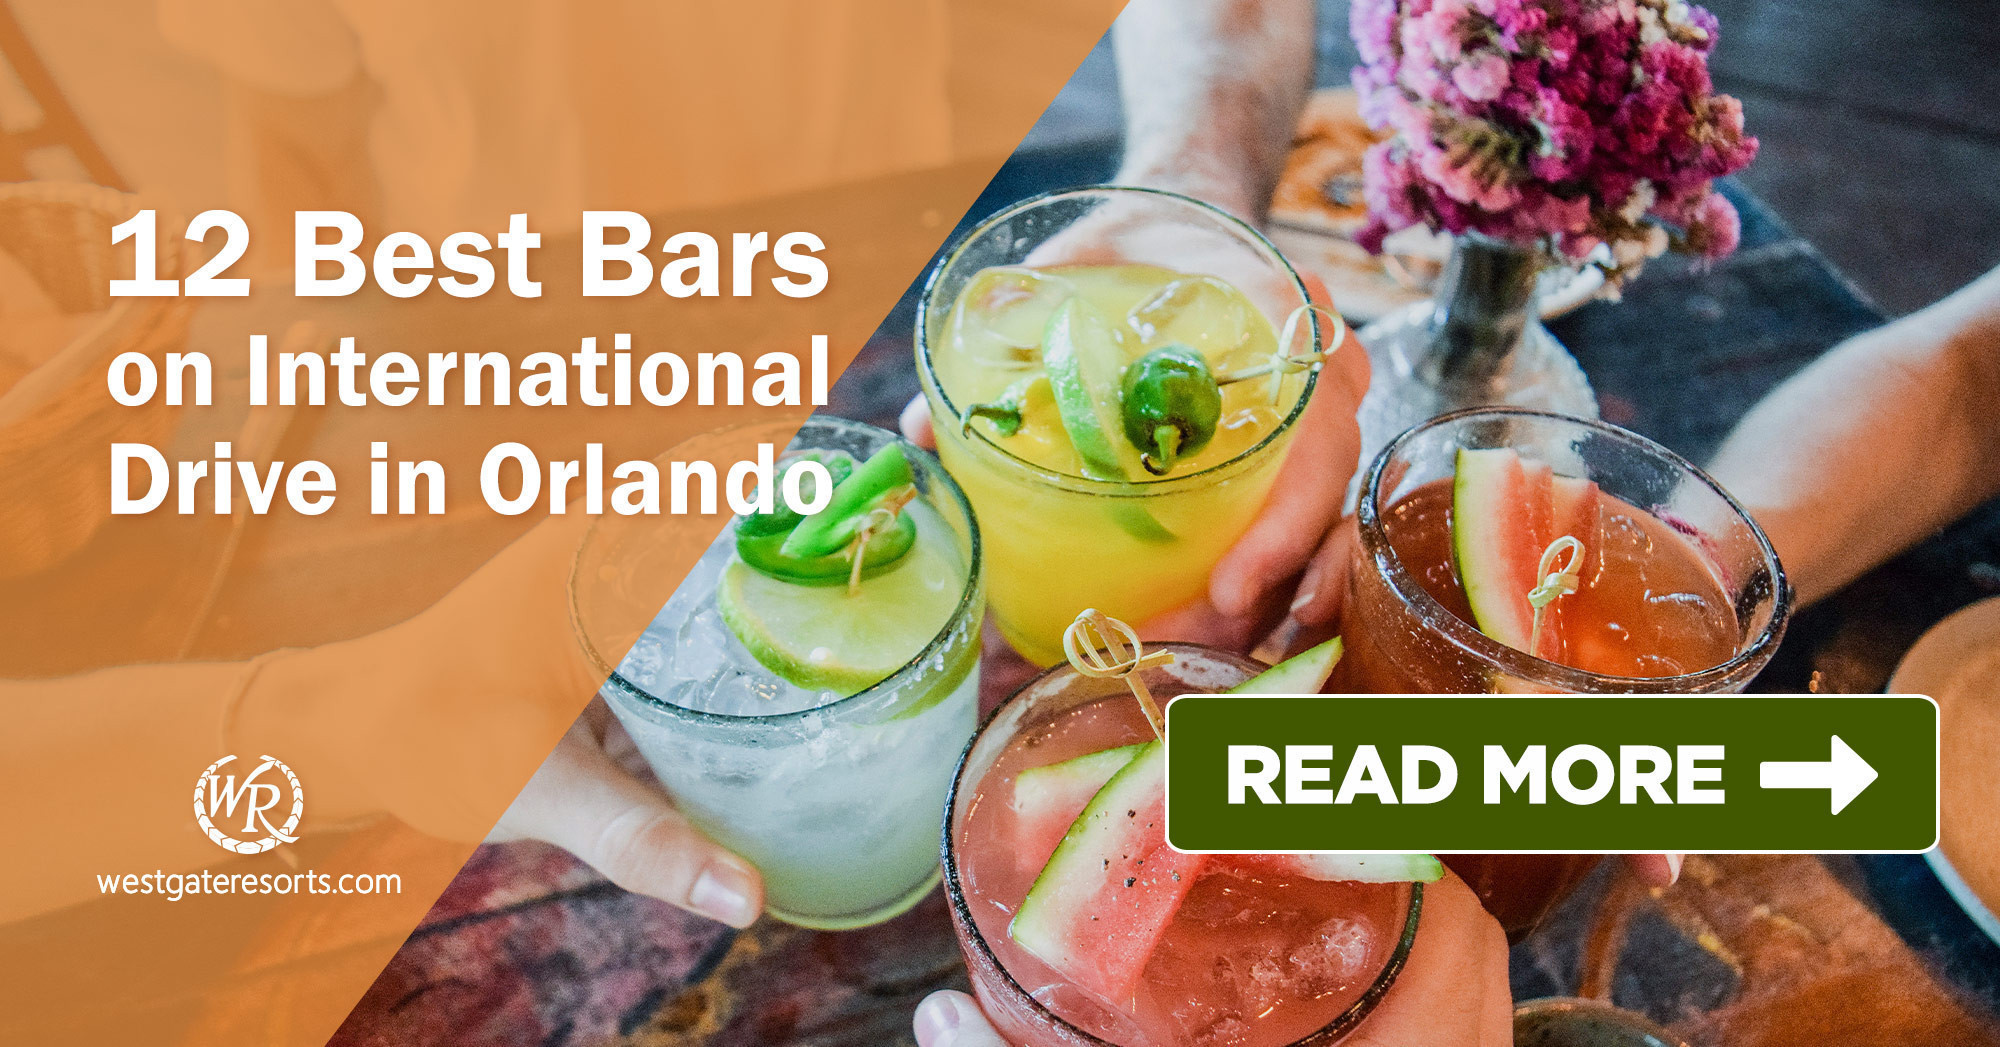 The 12 Best Bars on International Drive in Orlando | I Drive Bar Crawl & Cocktails Guide